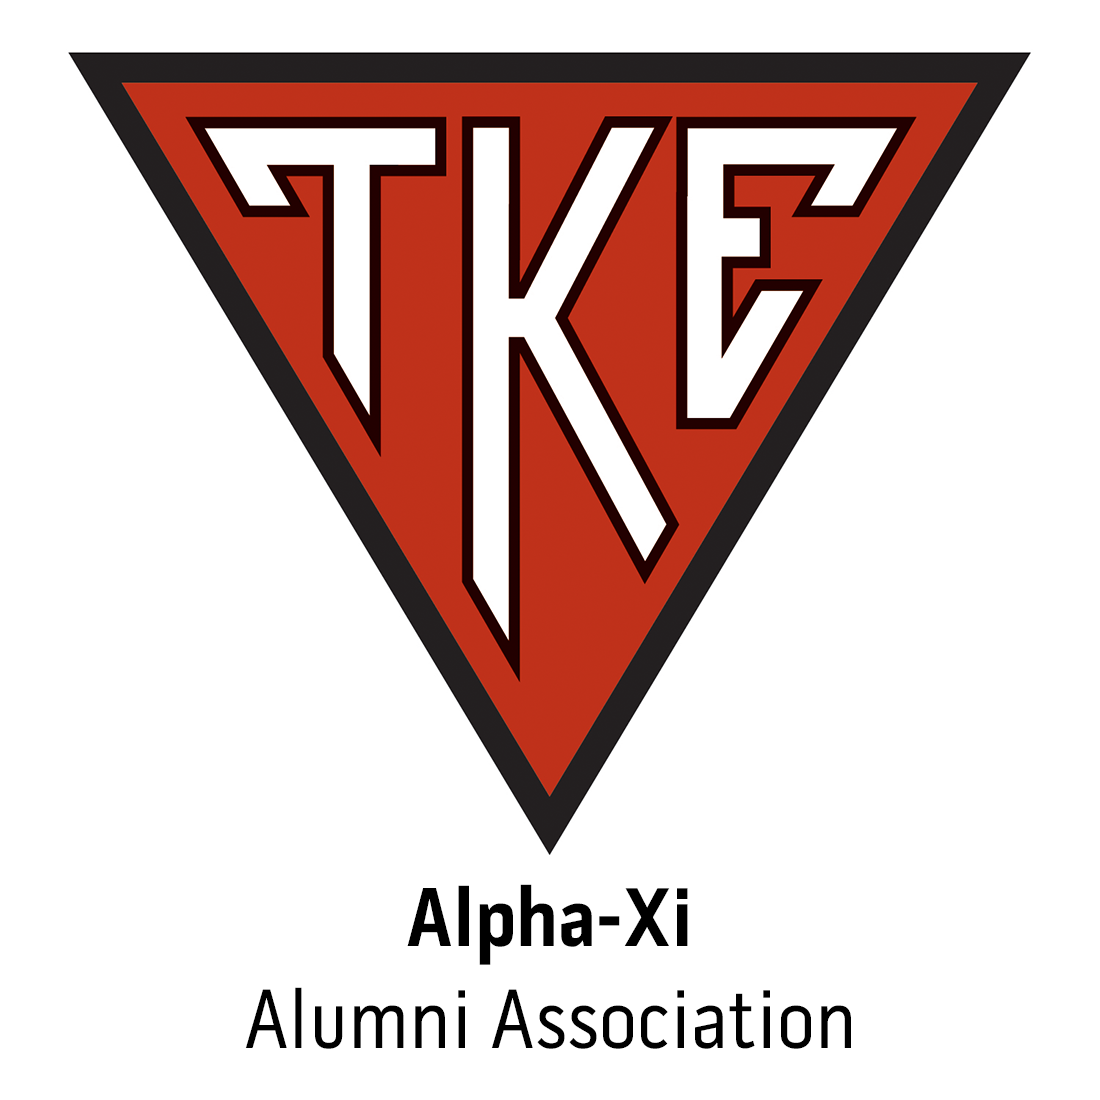 Alpha-Xi Alumni Association at Drake University